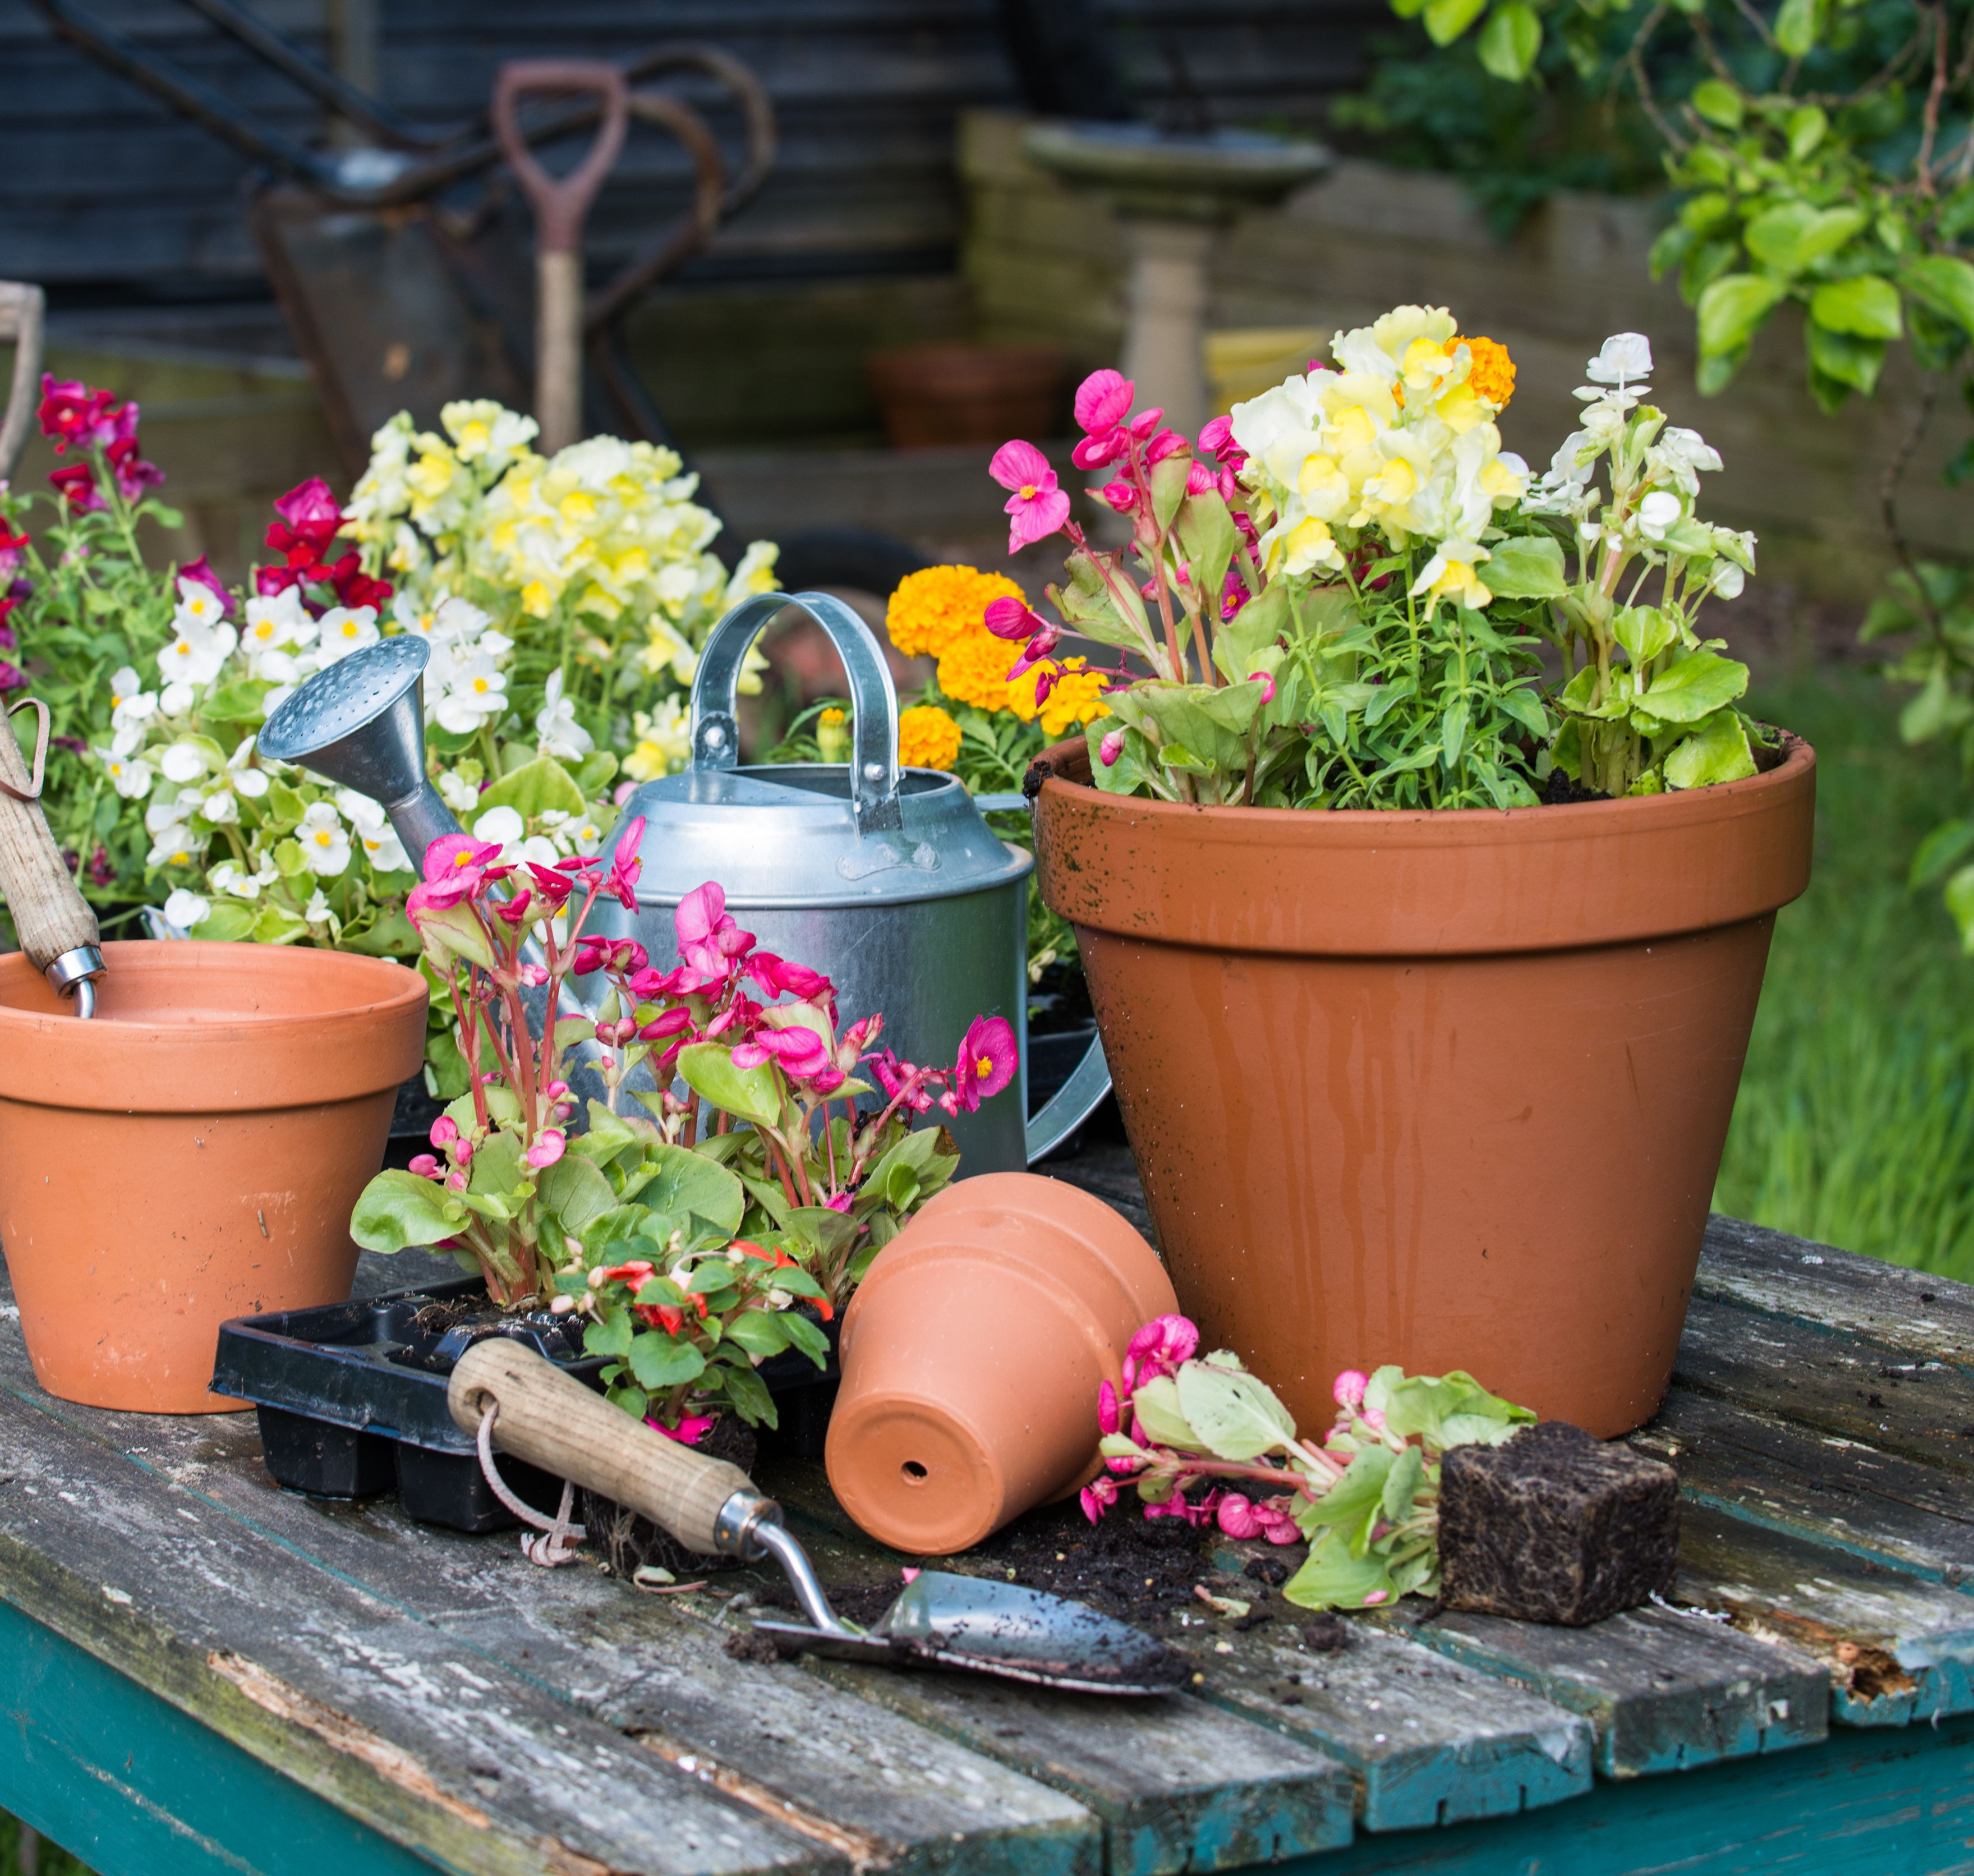 Best Flower Delivery Sites Unique Flower Garden and Gardening Care and Tips